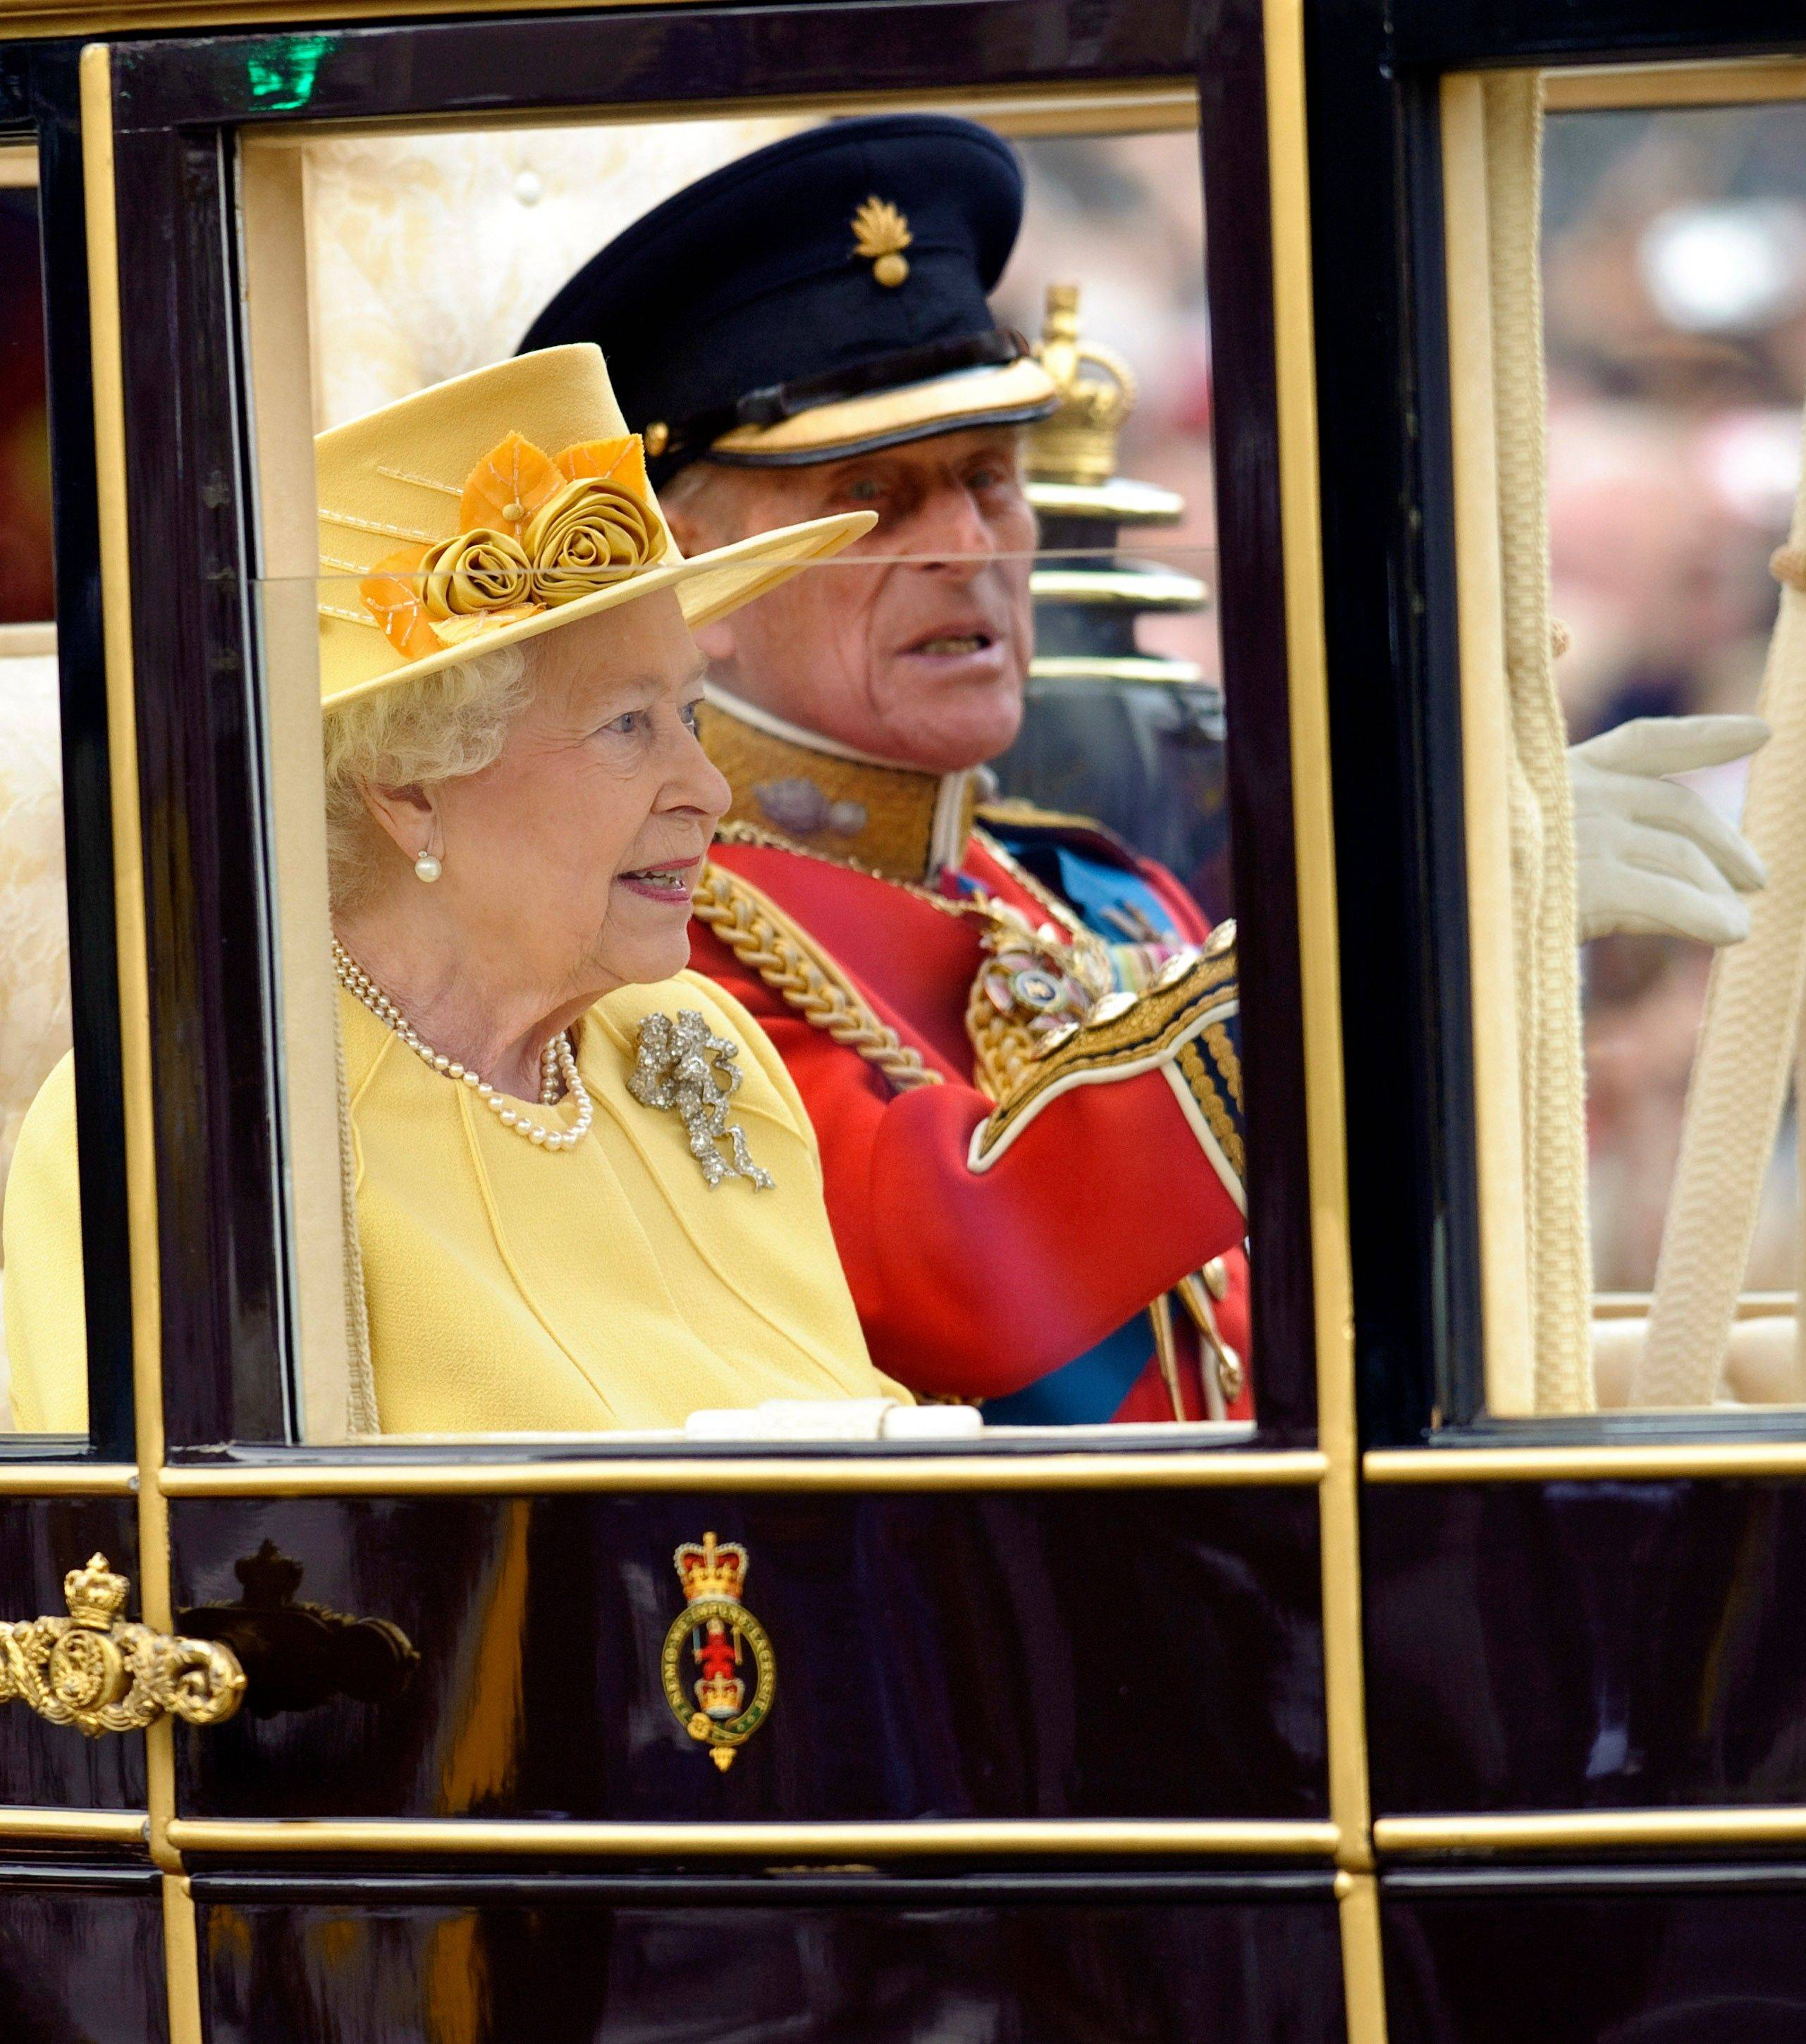 Britain's Queen Elizabeth II, left, and her husband Prince Philip, right, leave Westminster Abbey following the wedding of Britain's Prince William and his wife Kate, the Duchess of Cambridge, as they make their way along the procession route to Buckingham Palace, London, Friday, April, 29, 2011.